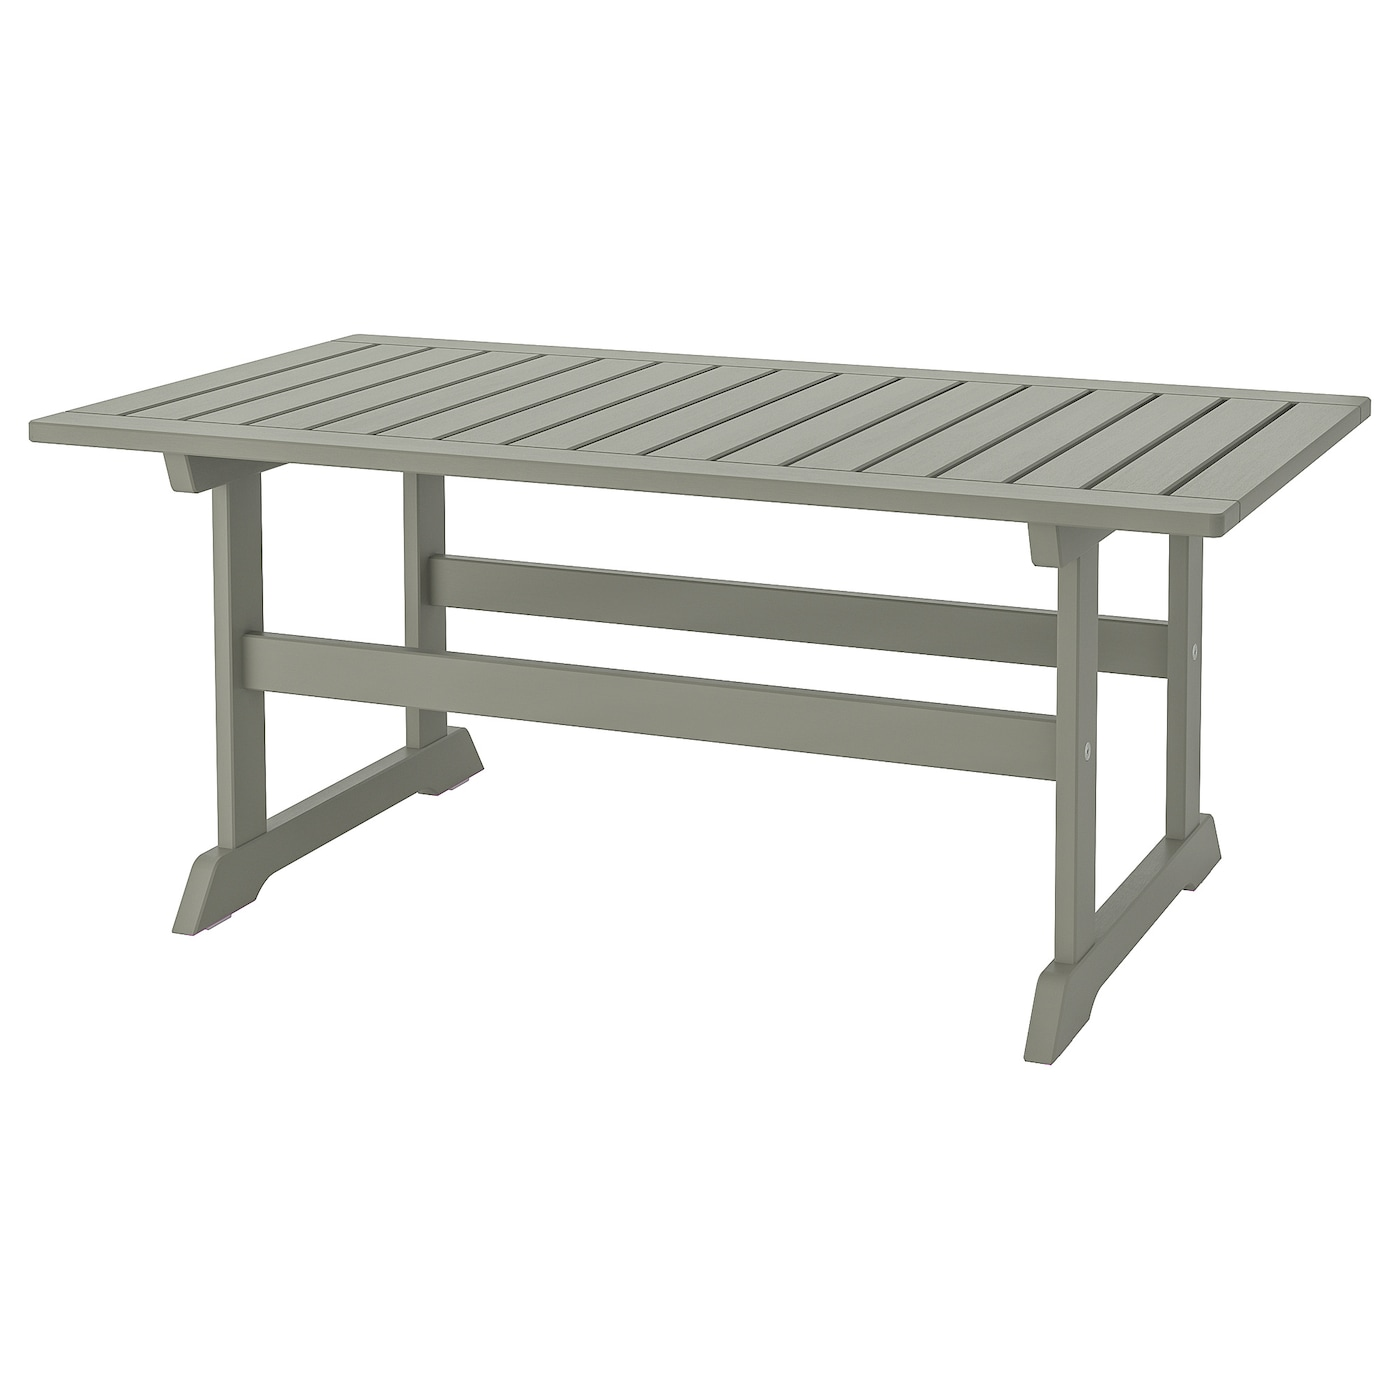 BONDHOLMEN Coffee table, outdoor - grey stained - IKEA Ireland